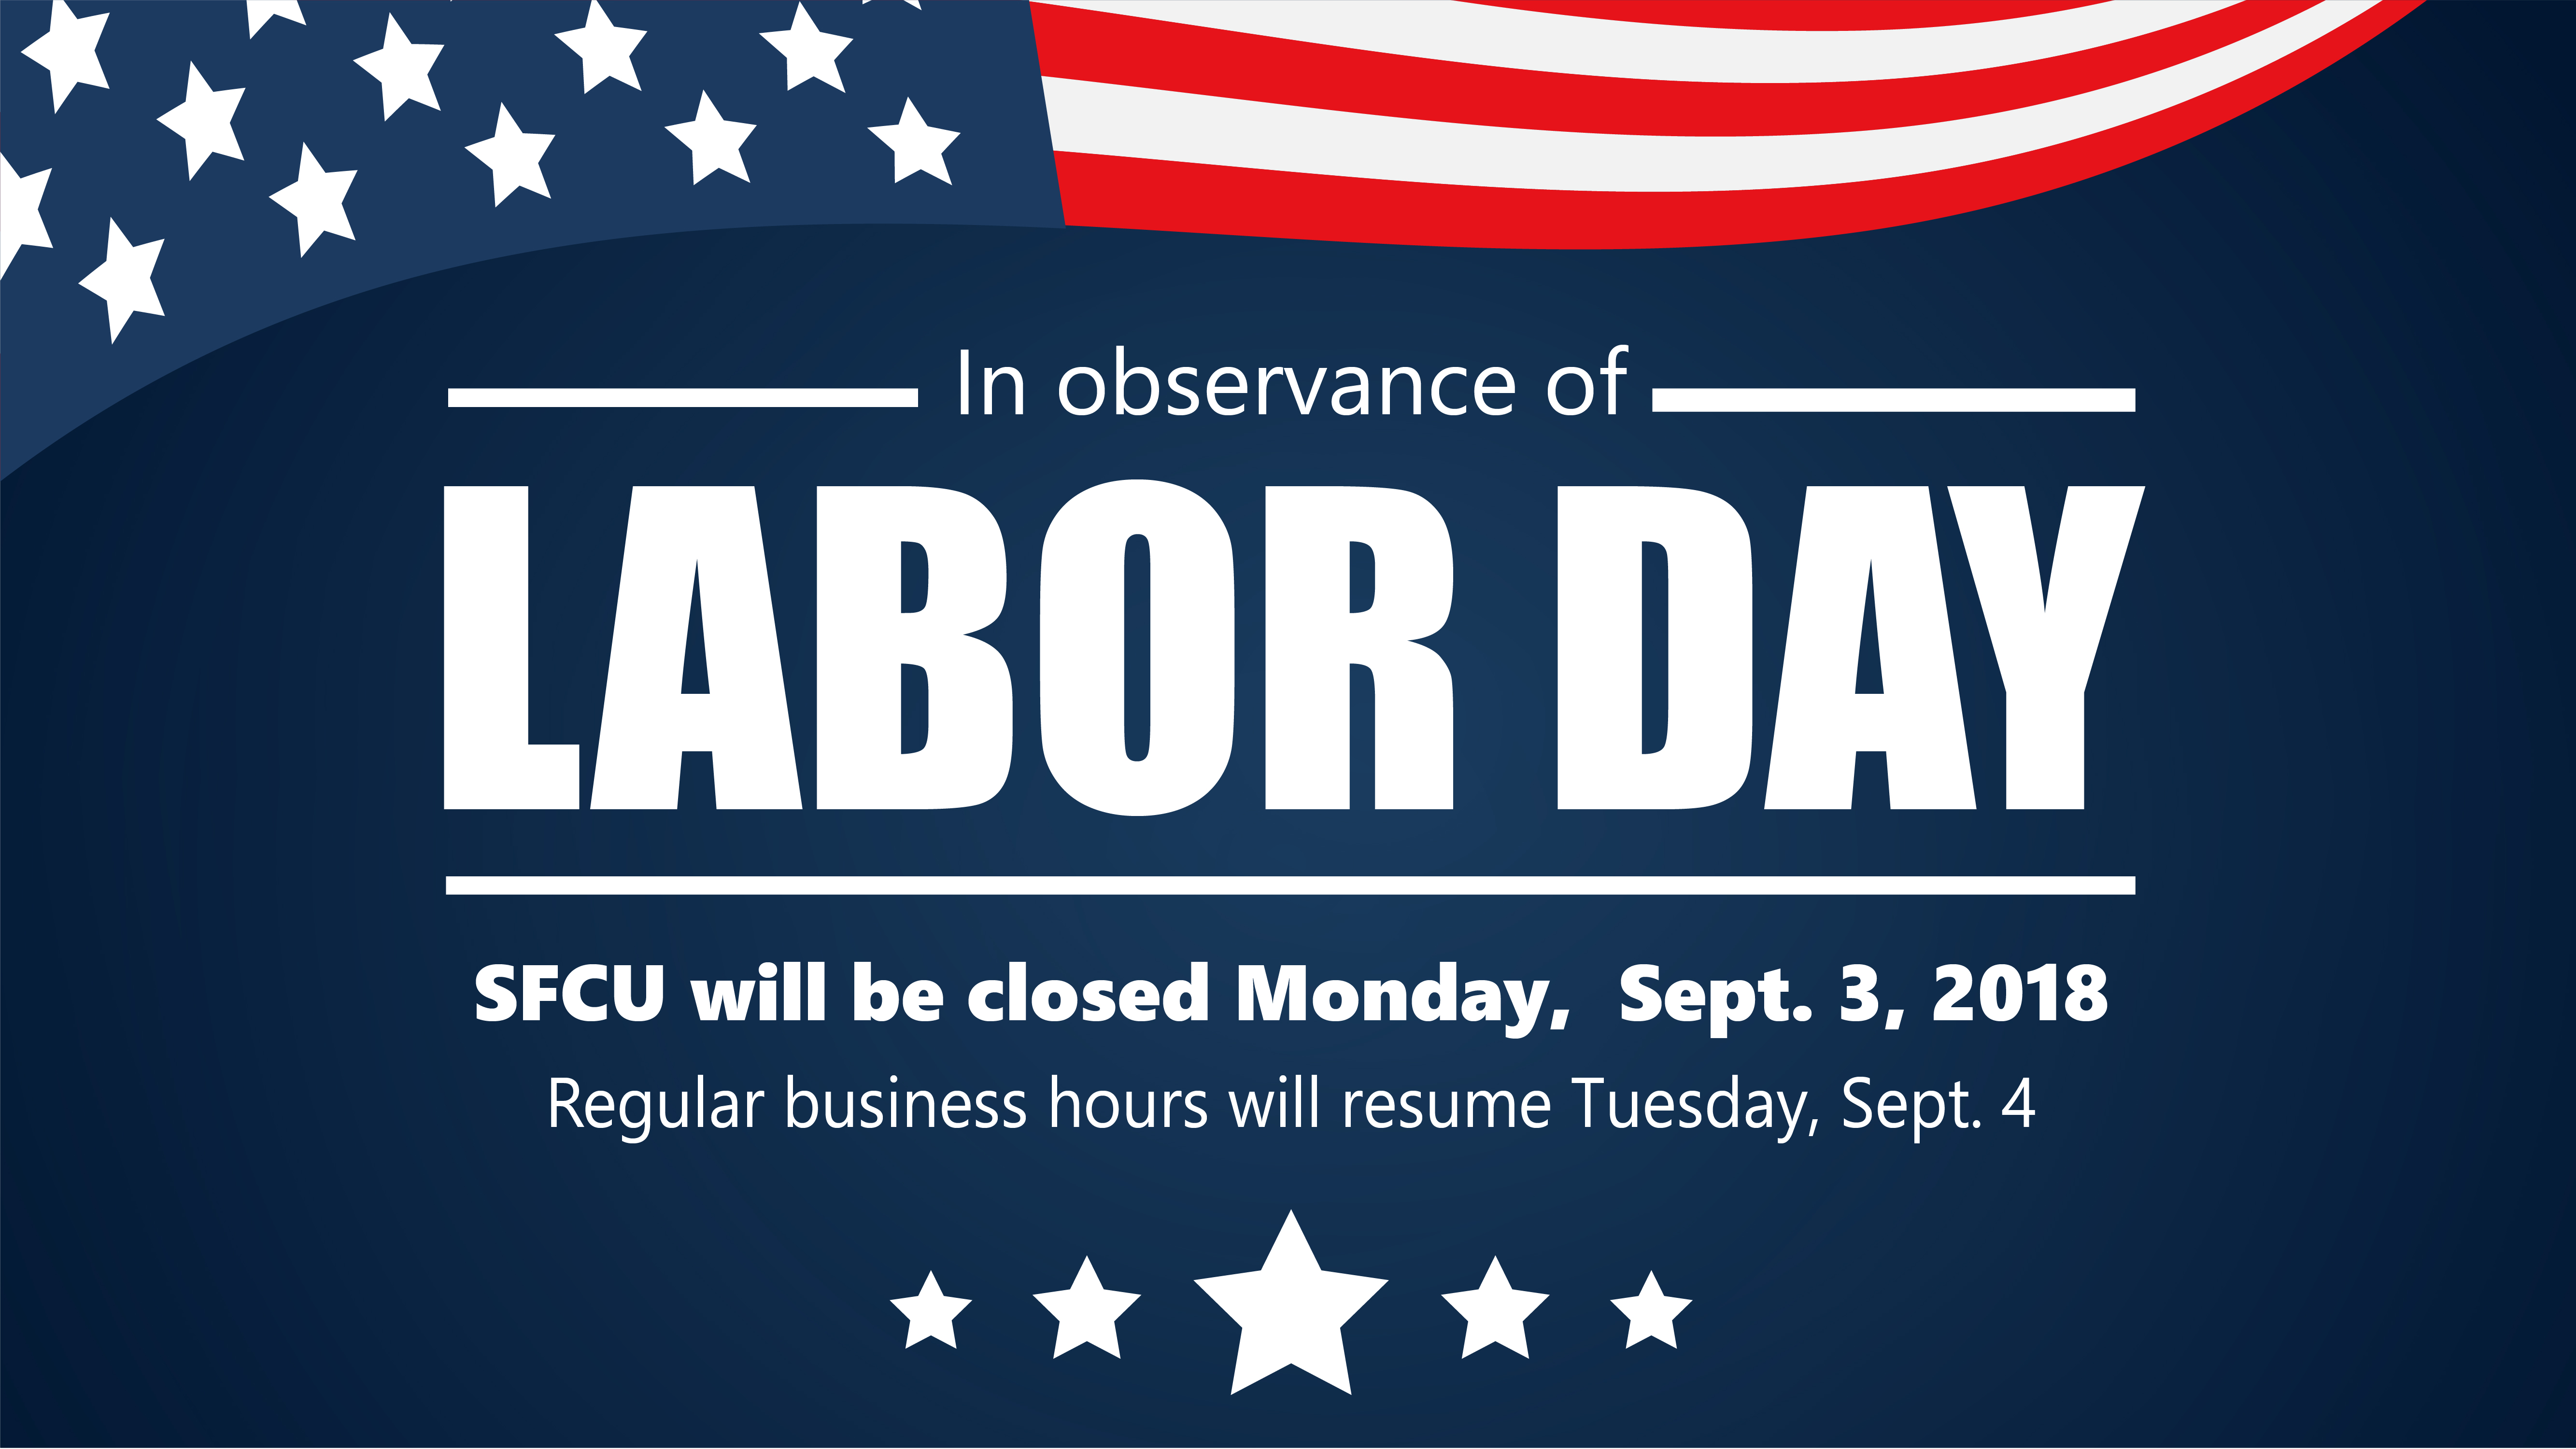 Closed_Holiday_Notice_Labor Day_Artboard 1